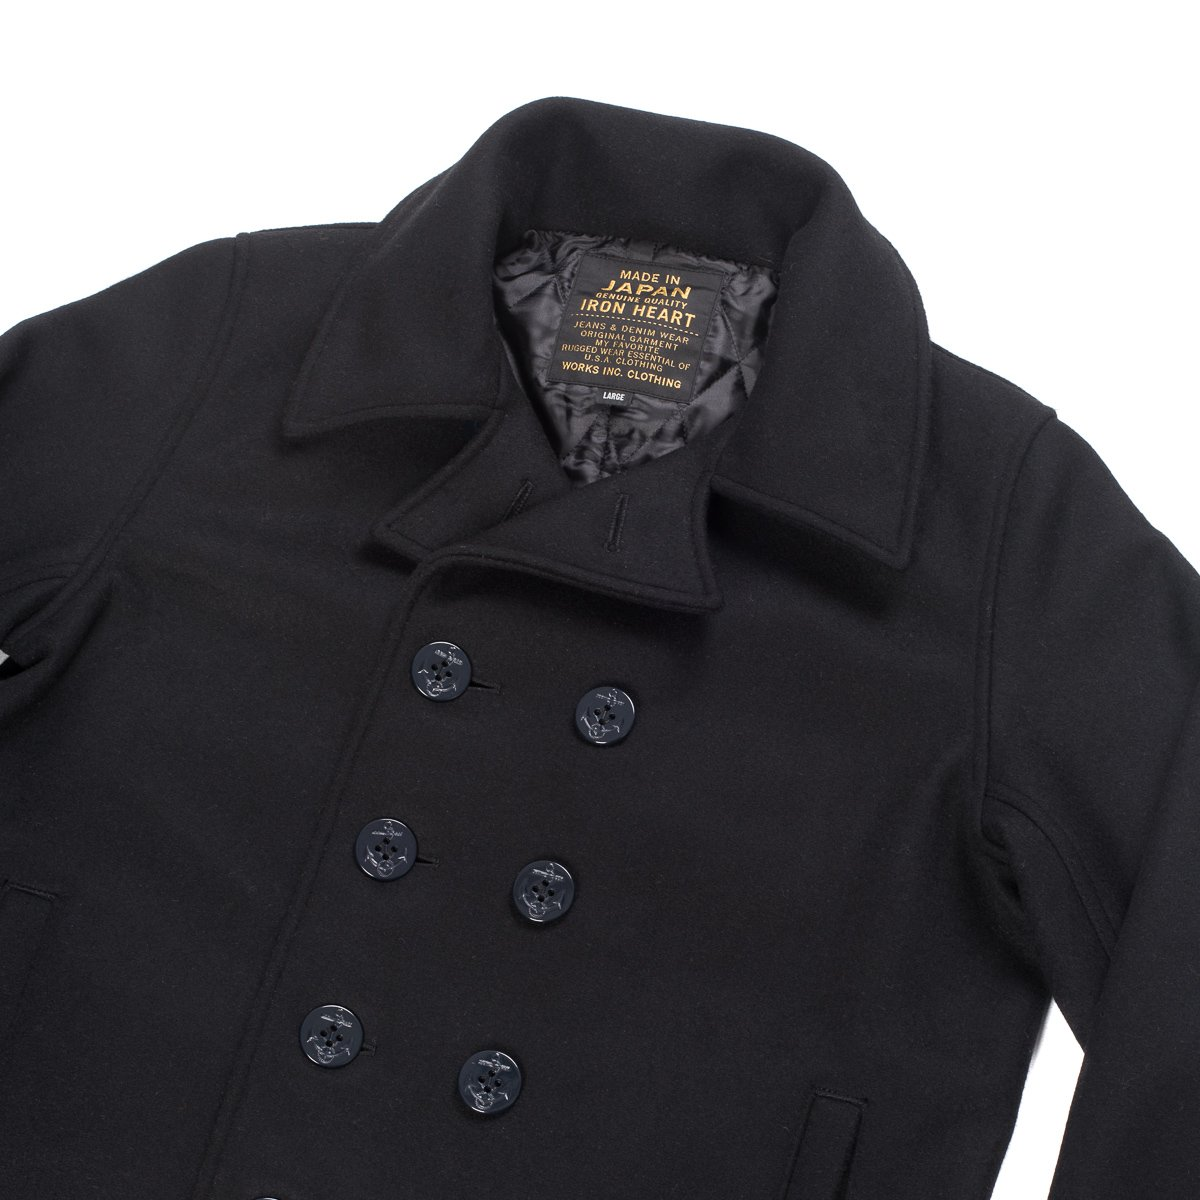 diversified in packaging special discount of luxury fashion Melton Wool Pea Coat - Black